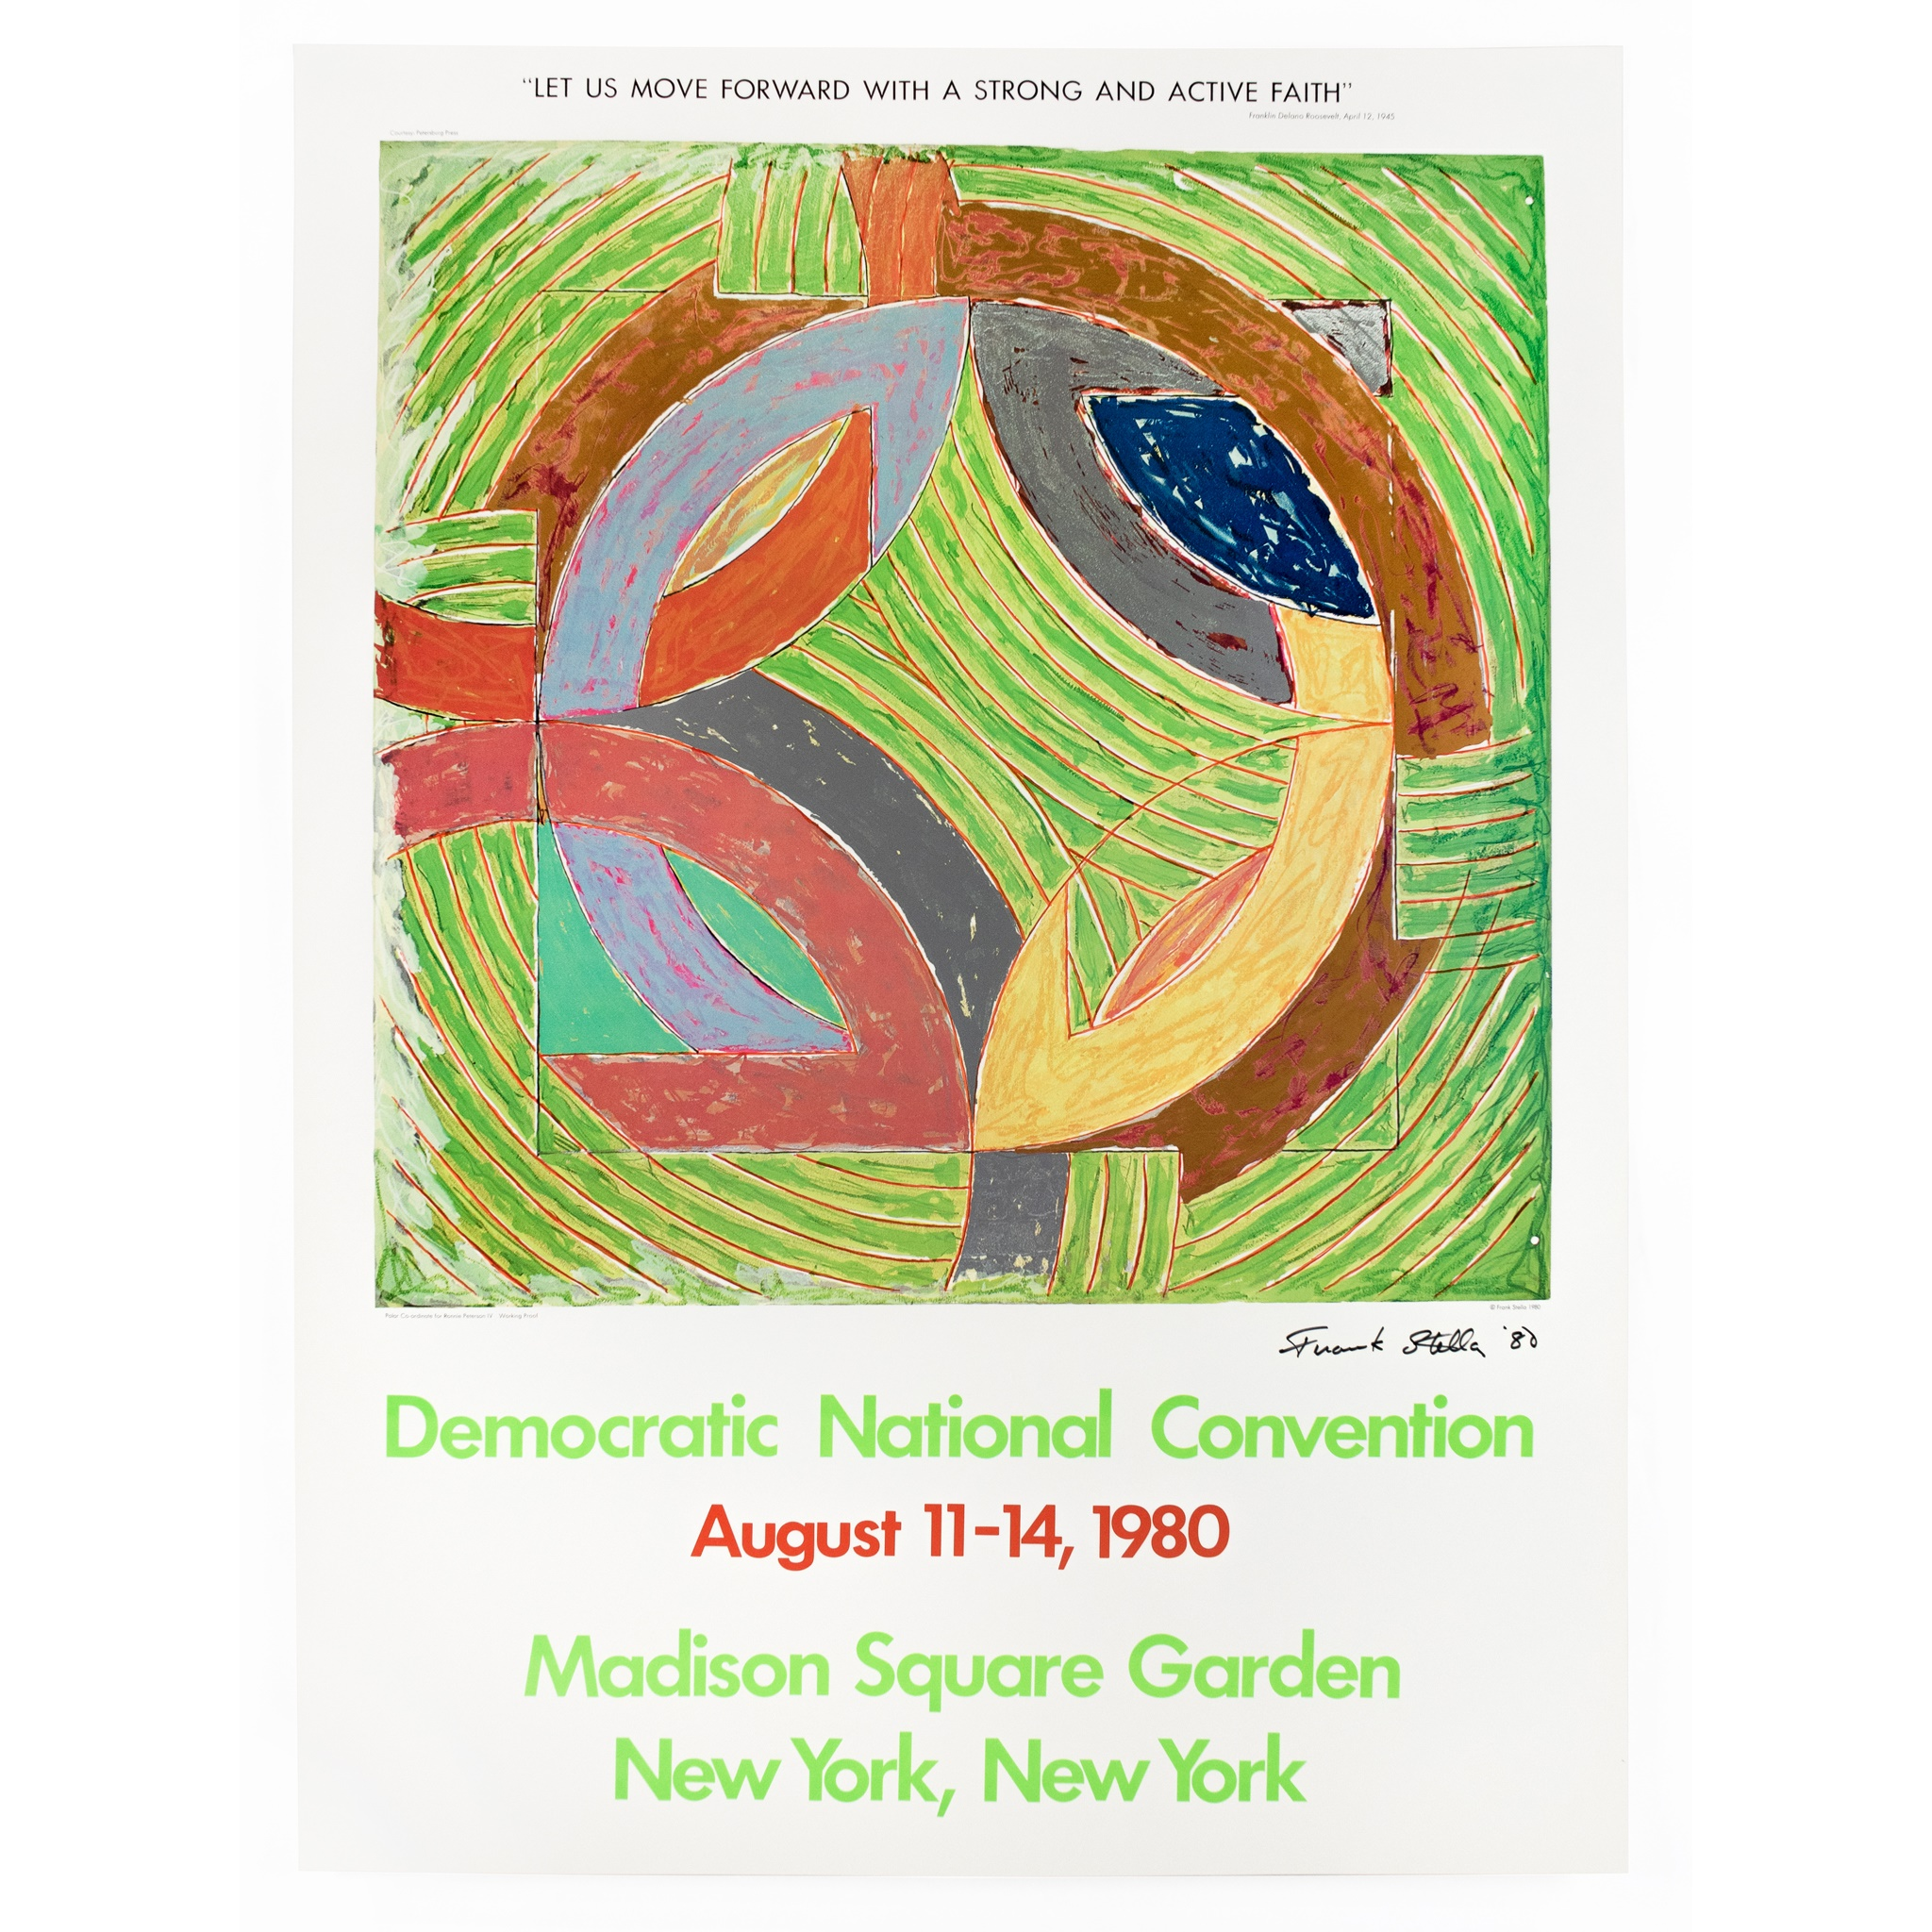 AFTER FRANK STELLA (American 1936- ) DEMOCRATIC NATIONAL CONVENTION, POLAR CO-ORDINATE IV